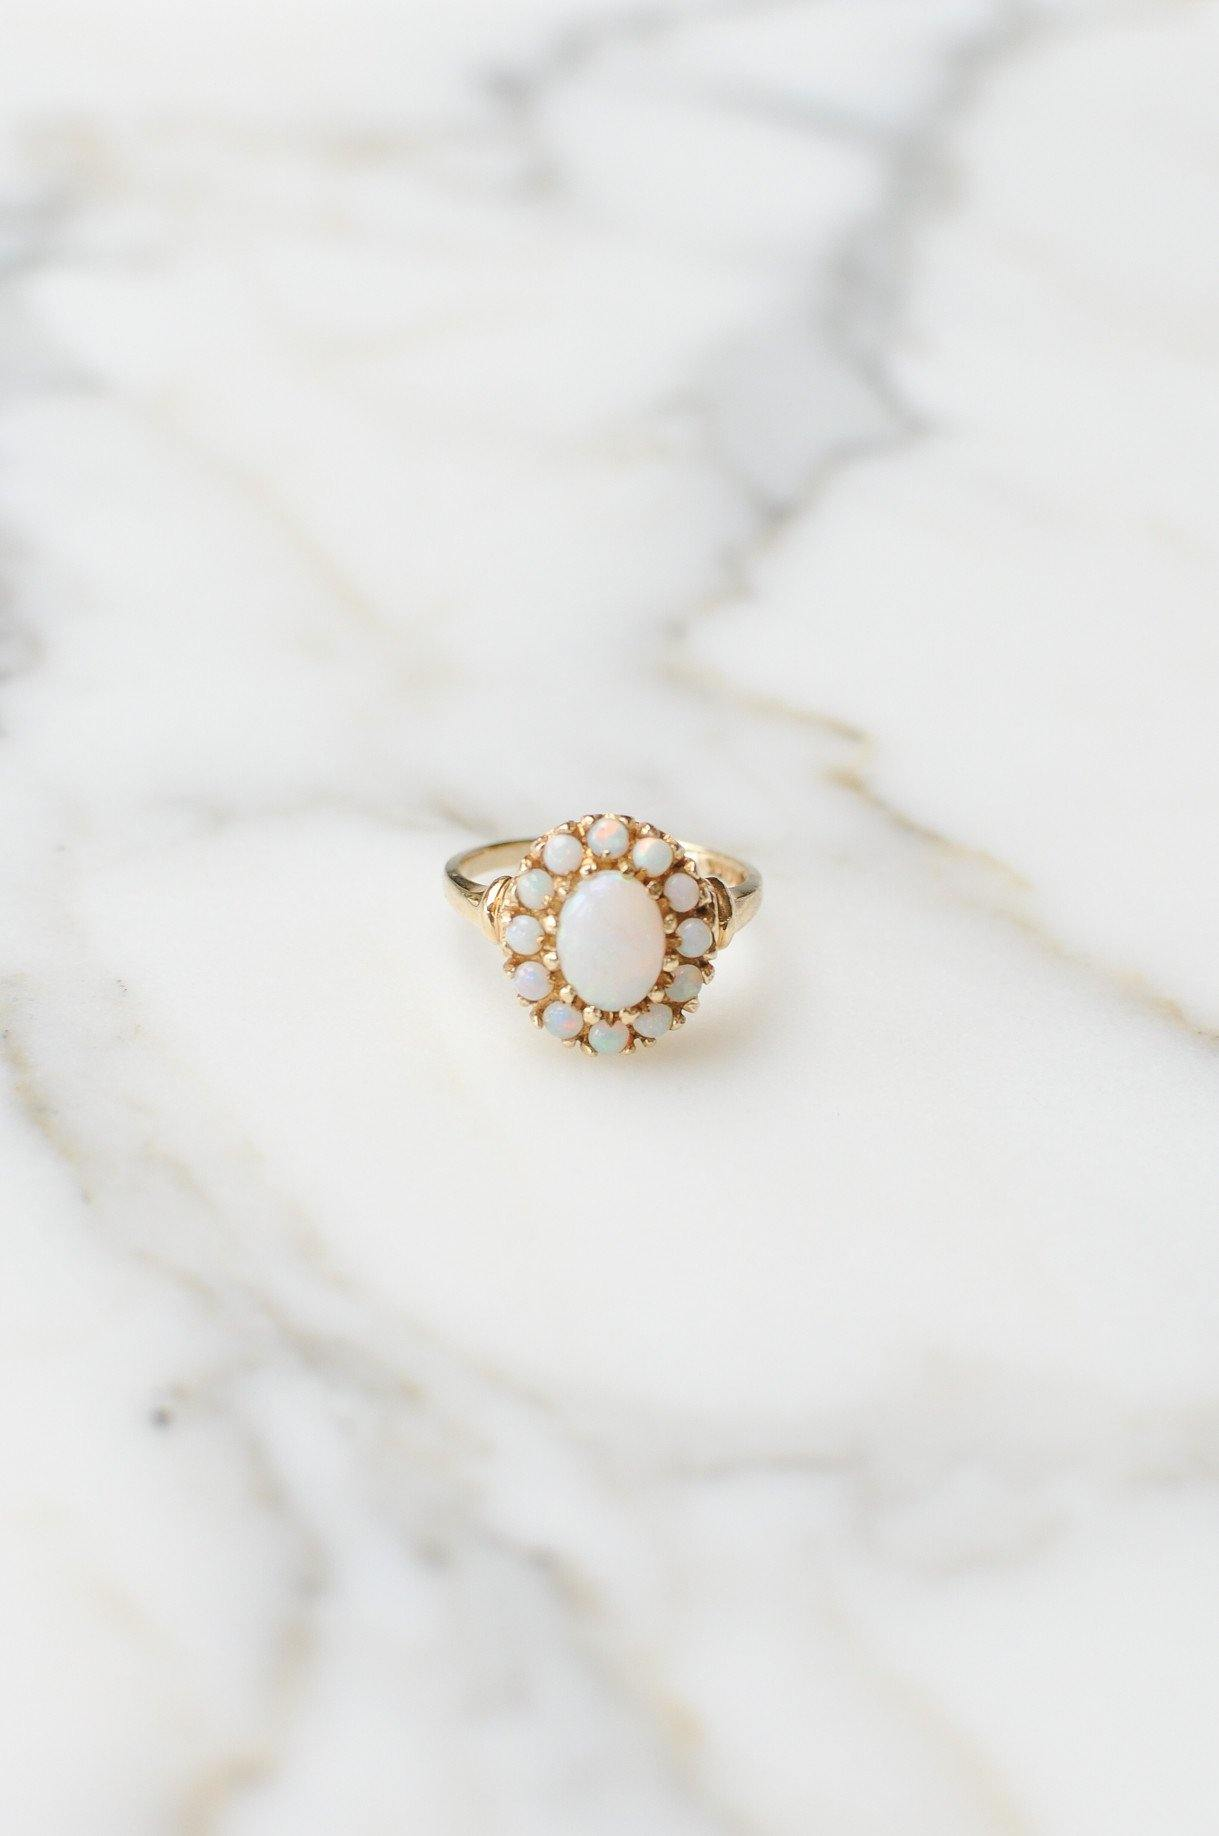 __Gold West Vintage__Australian Opal Cocktail Ring